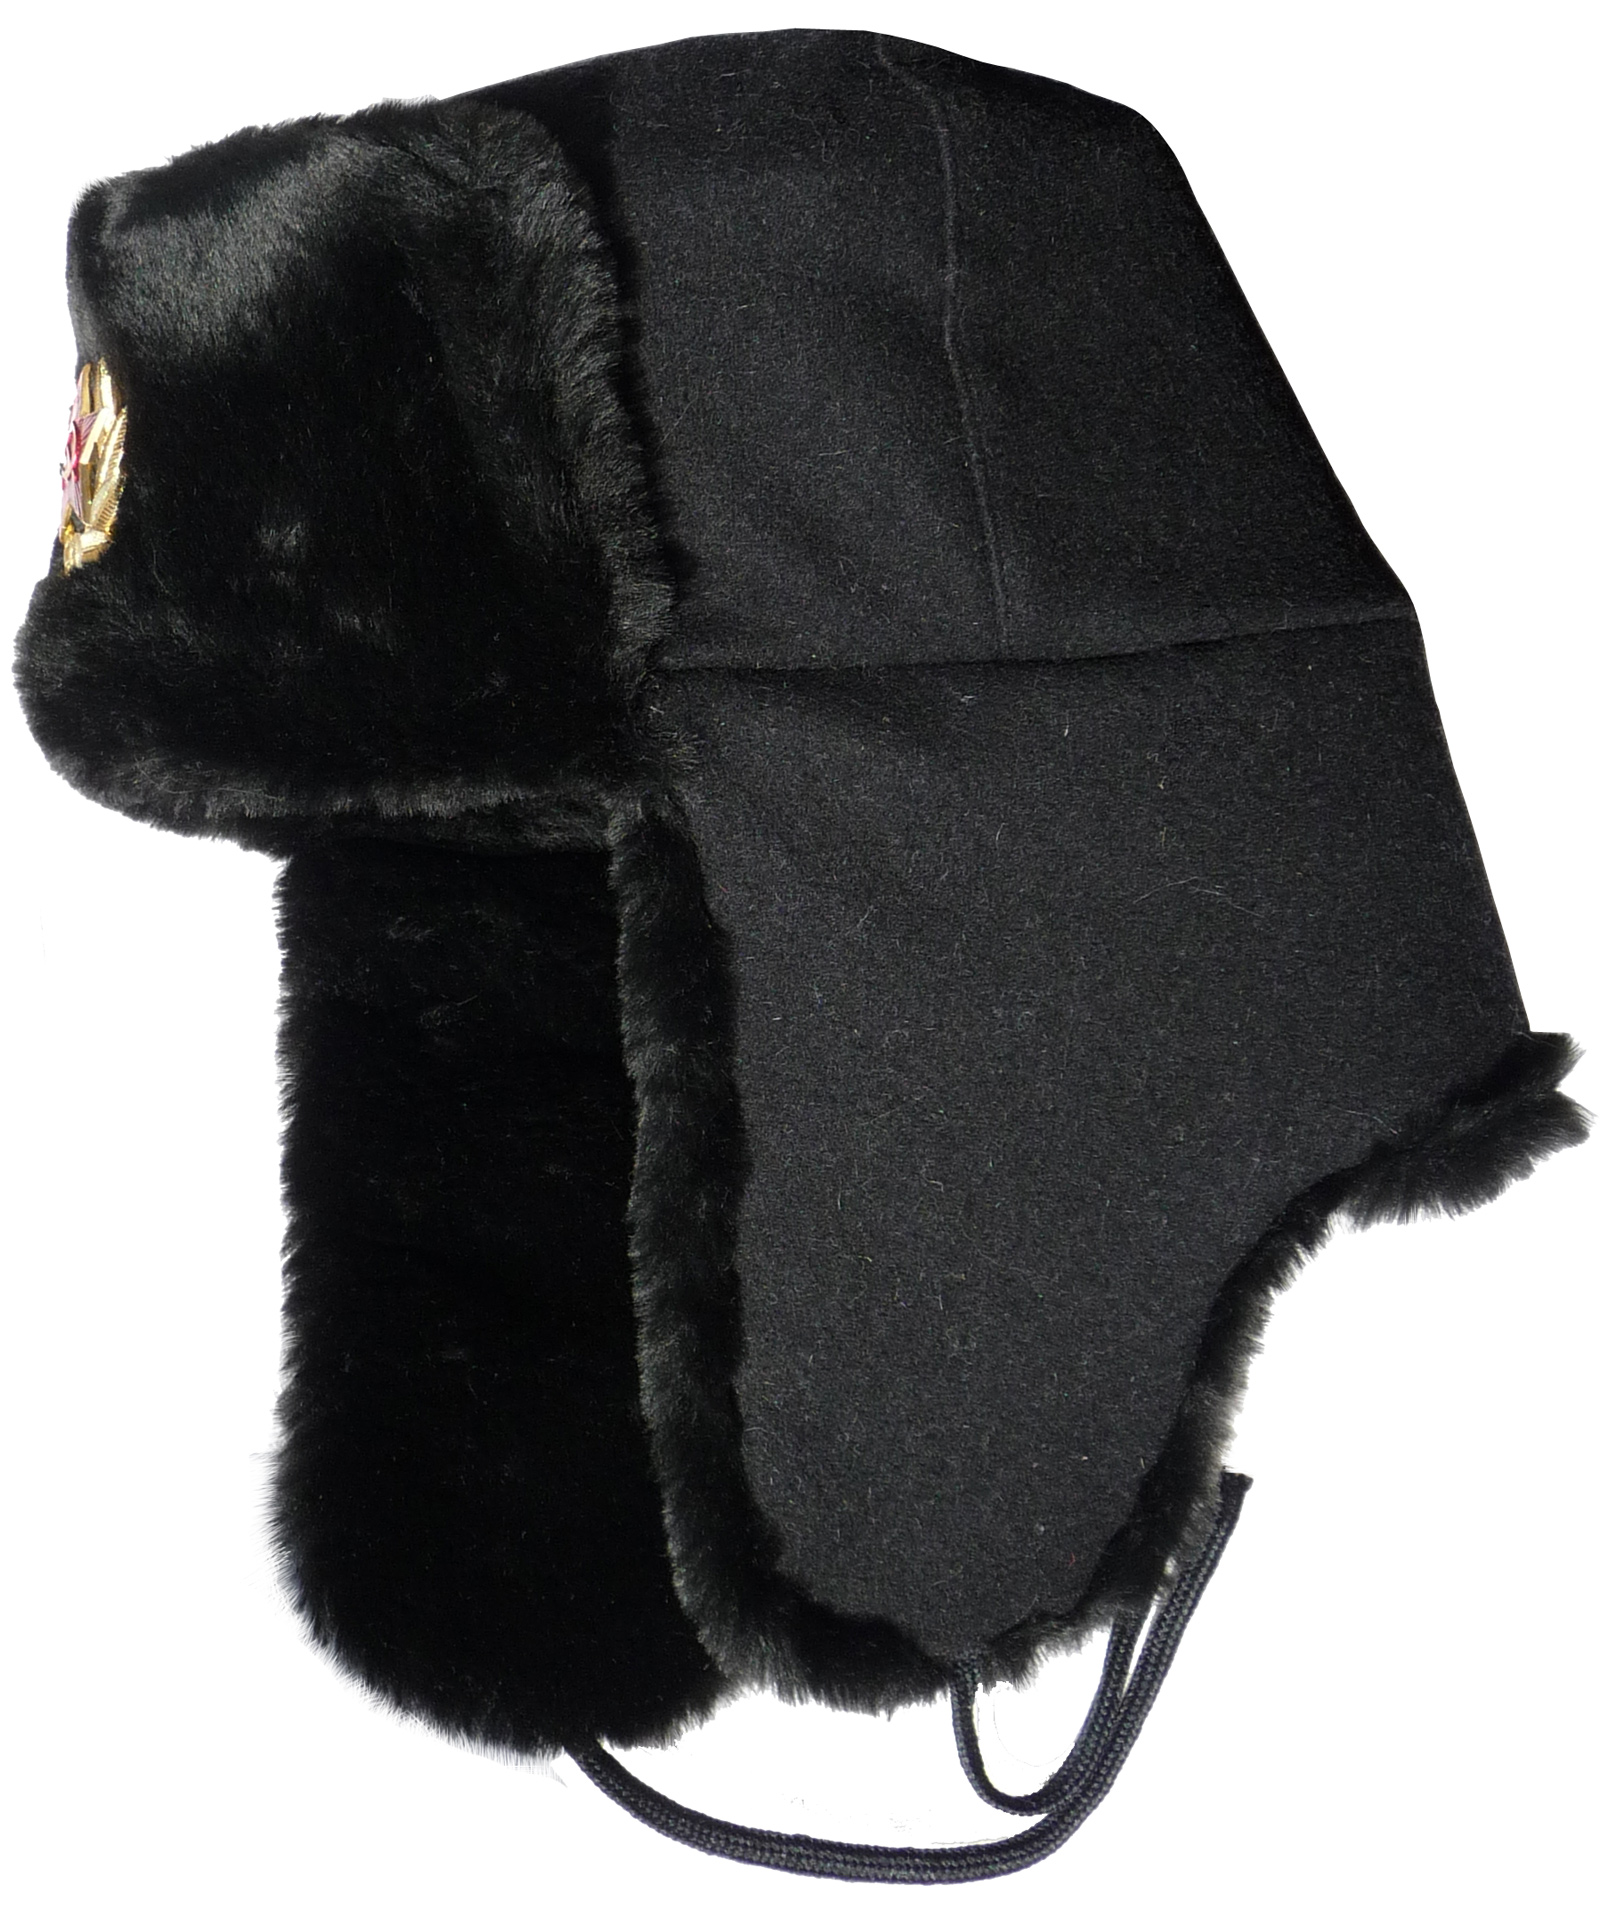 Russian Navy seaman winter hat. Black. b954f1fac38